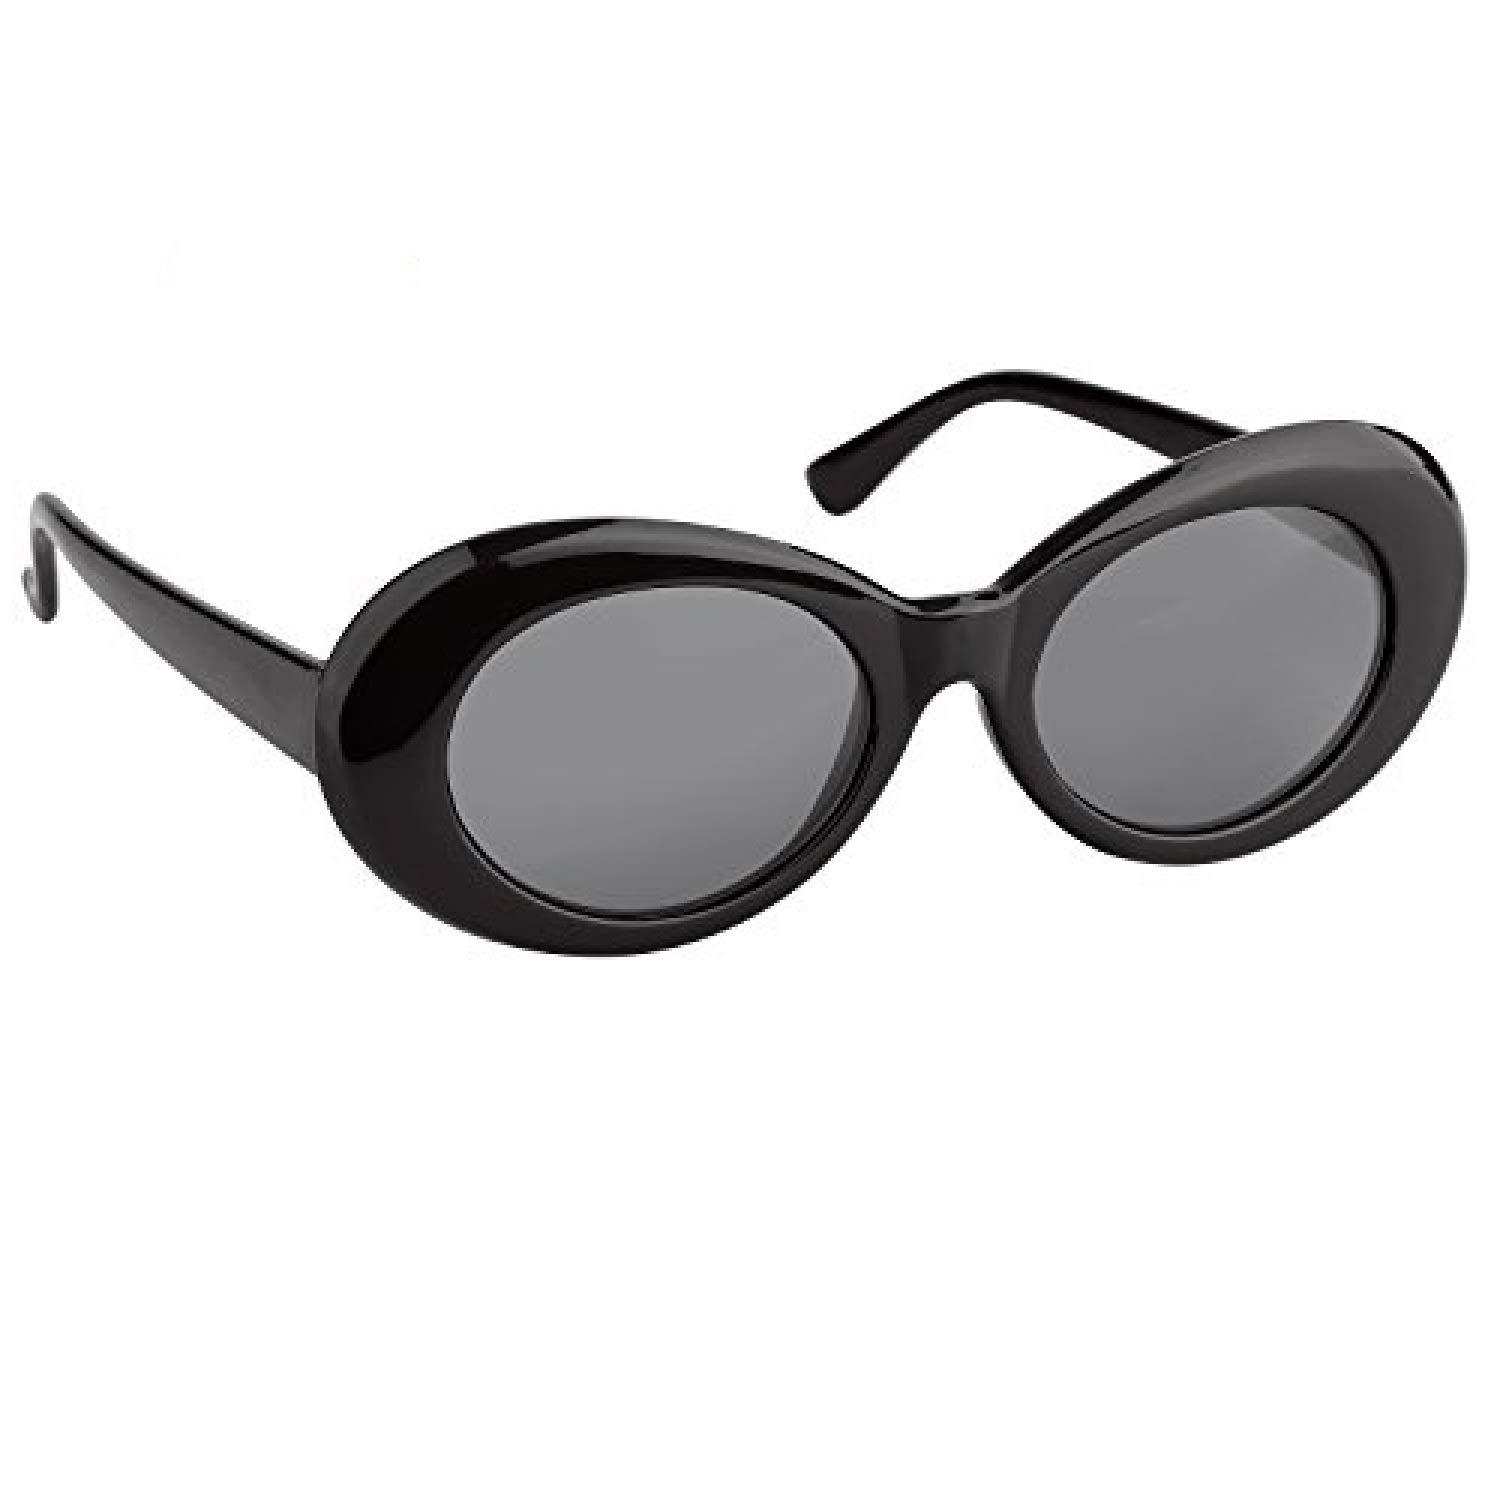 322c59816b5 Elimoons Clout Goggles Retro Oval Mod Thick Frame UV400 Sunglasses Lens 2  Pack Black